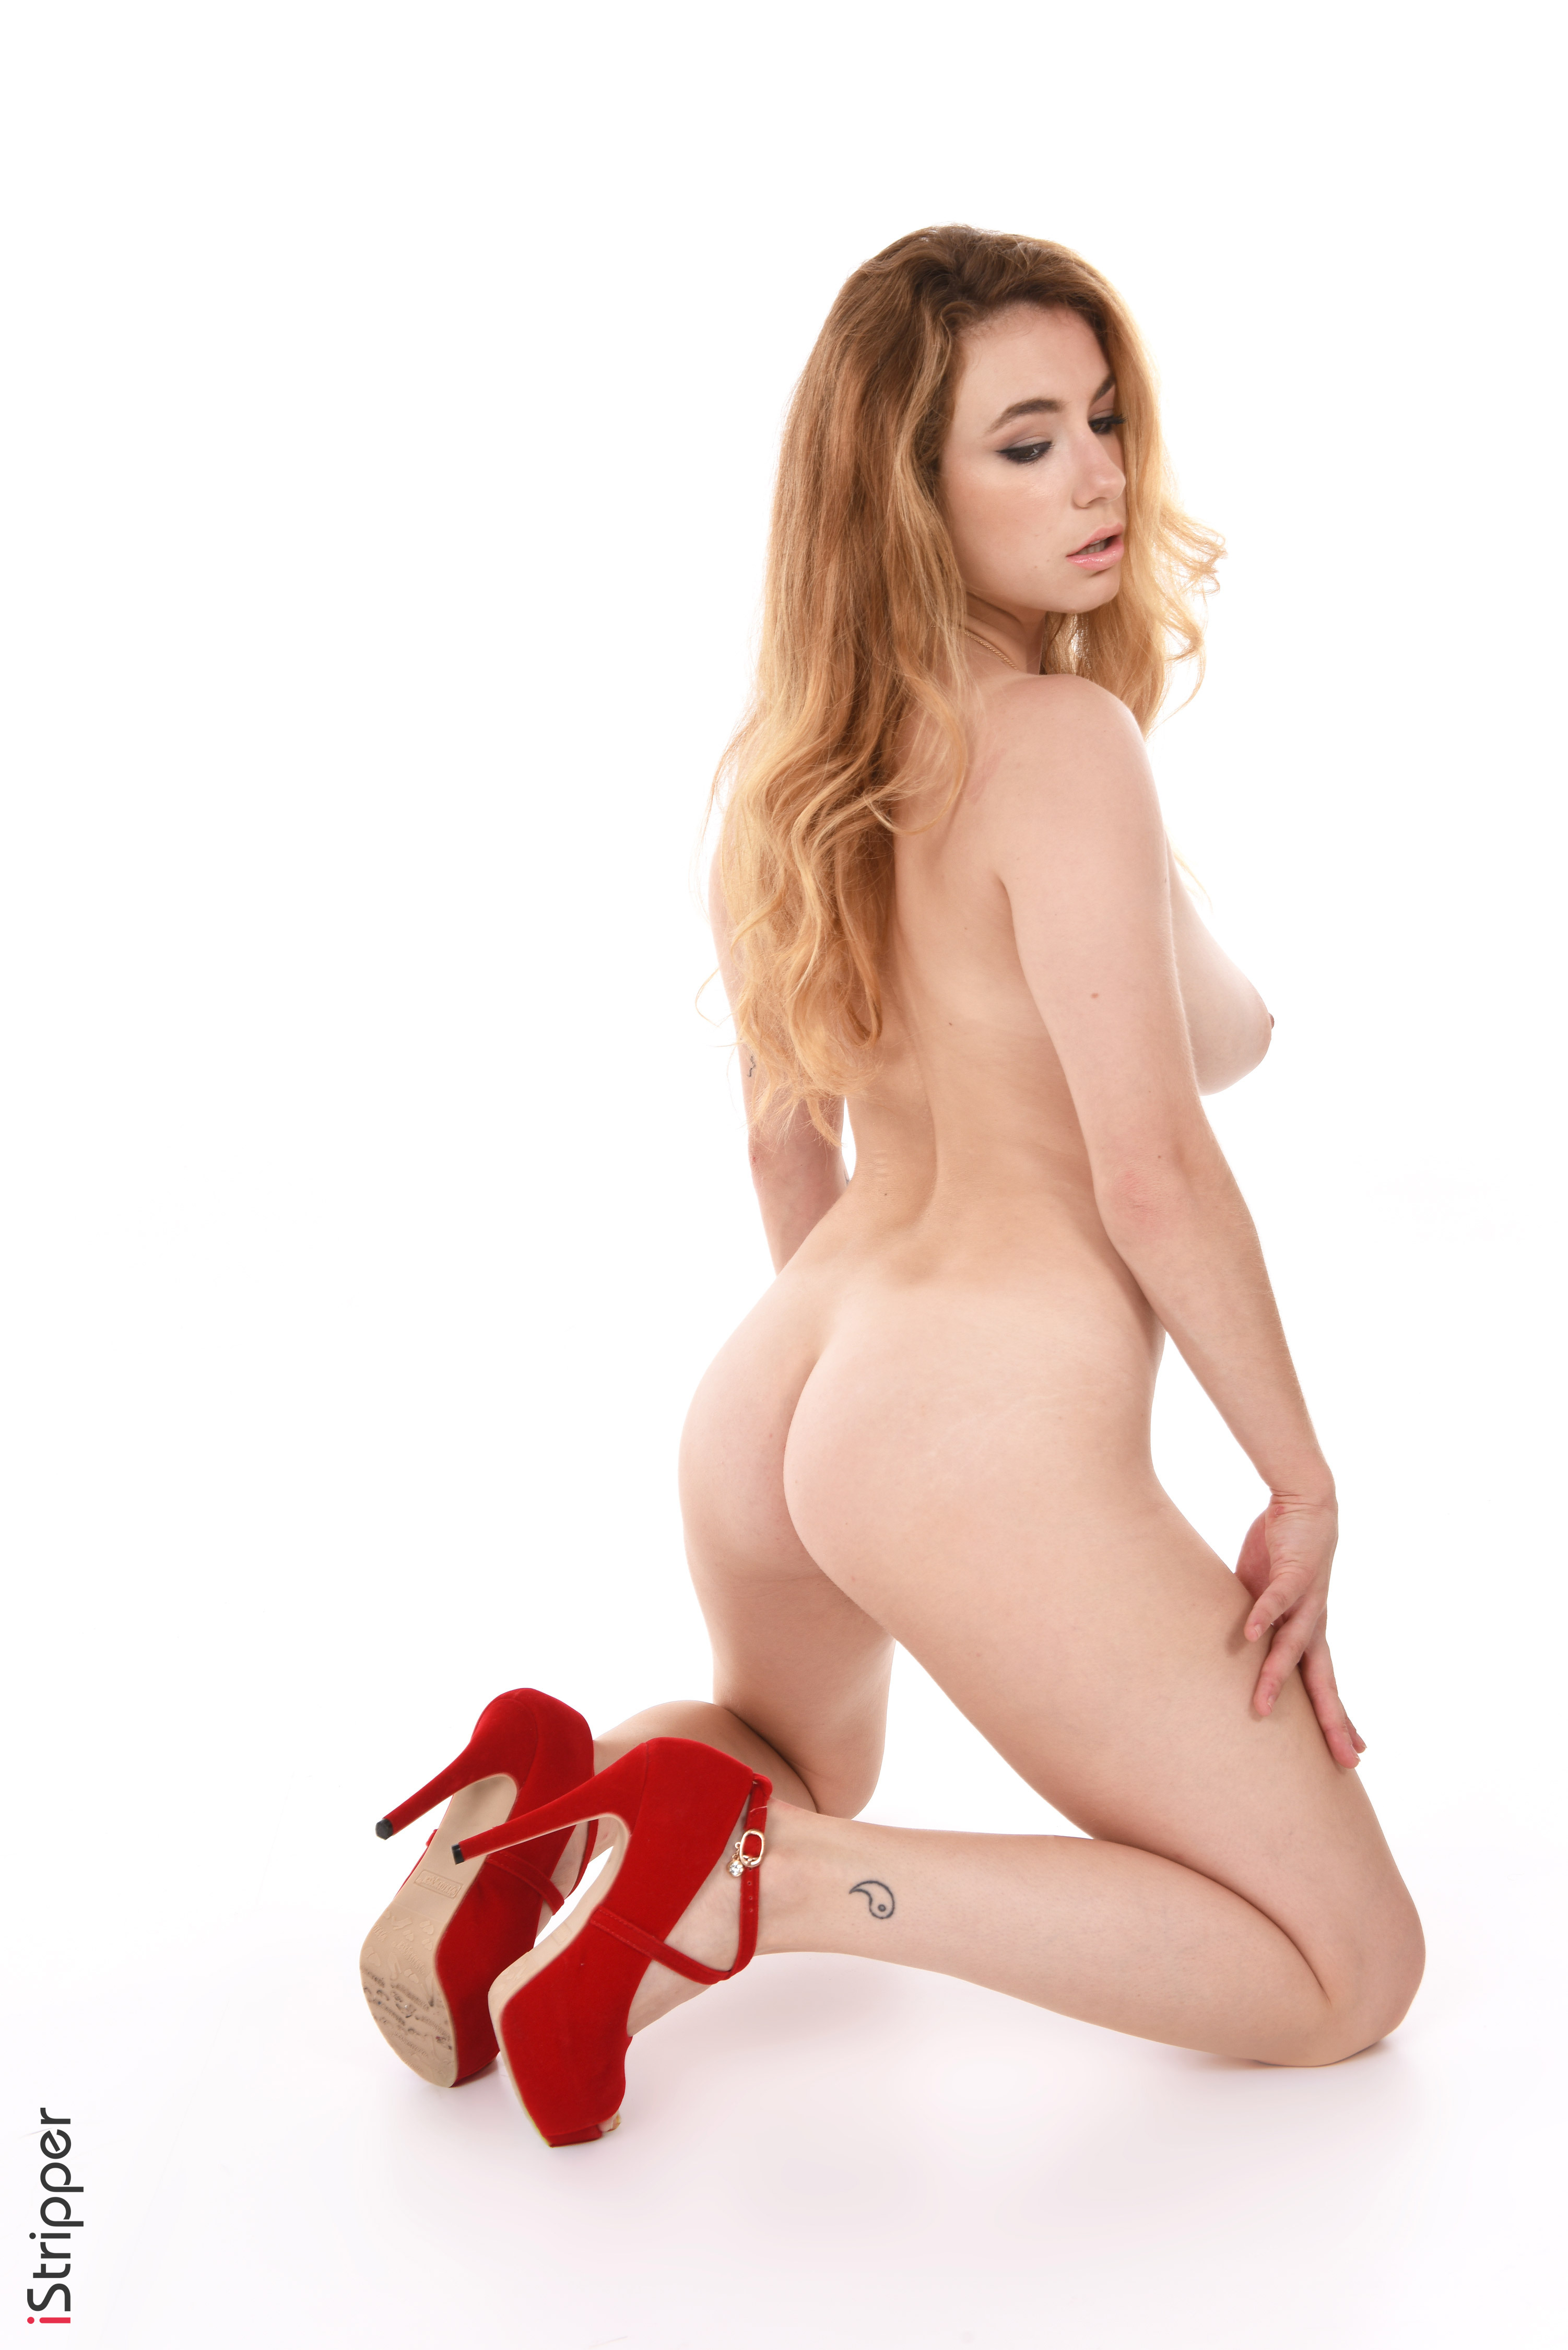 nude wallpapers free download